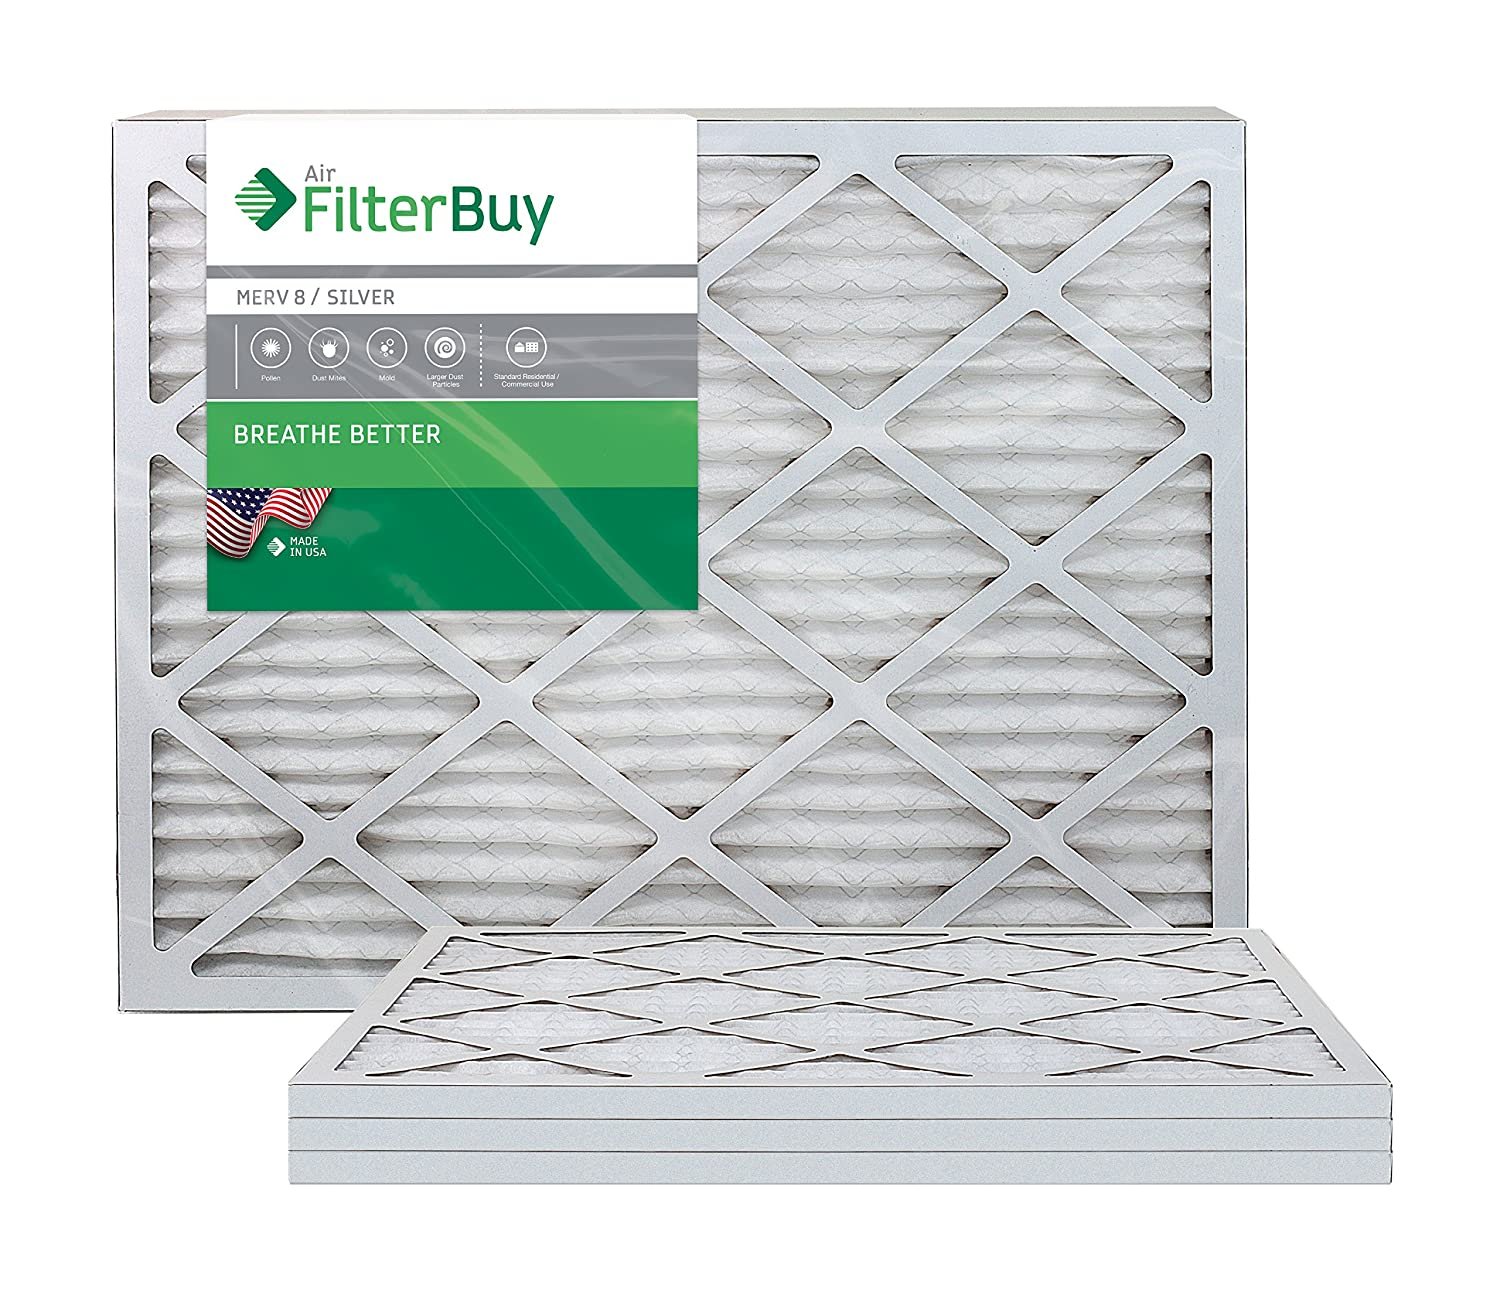 1. FilterBuy 14x30x1 MERV 8 Pleated AC Furnace Air Filter, (Pack of 4 Filters), 14x30x1 - Silver